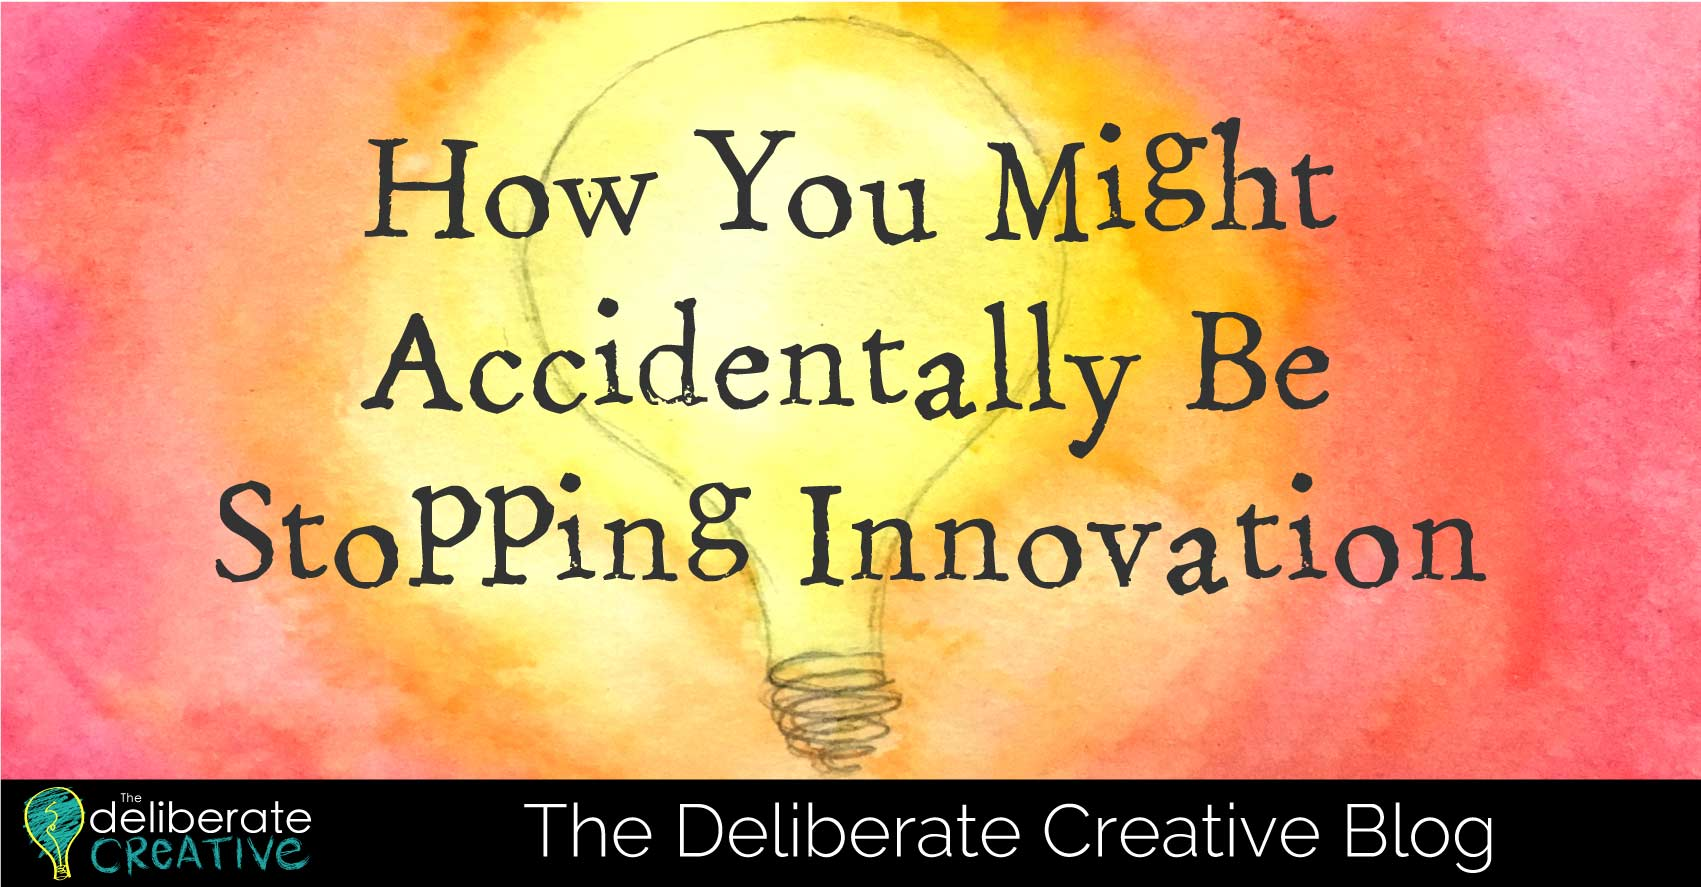 The Deliberate Creative: How You Might Accidentally Be Stopping Innovation